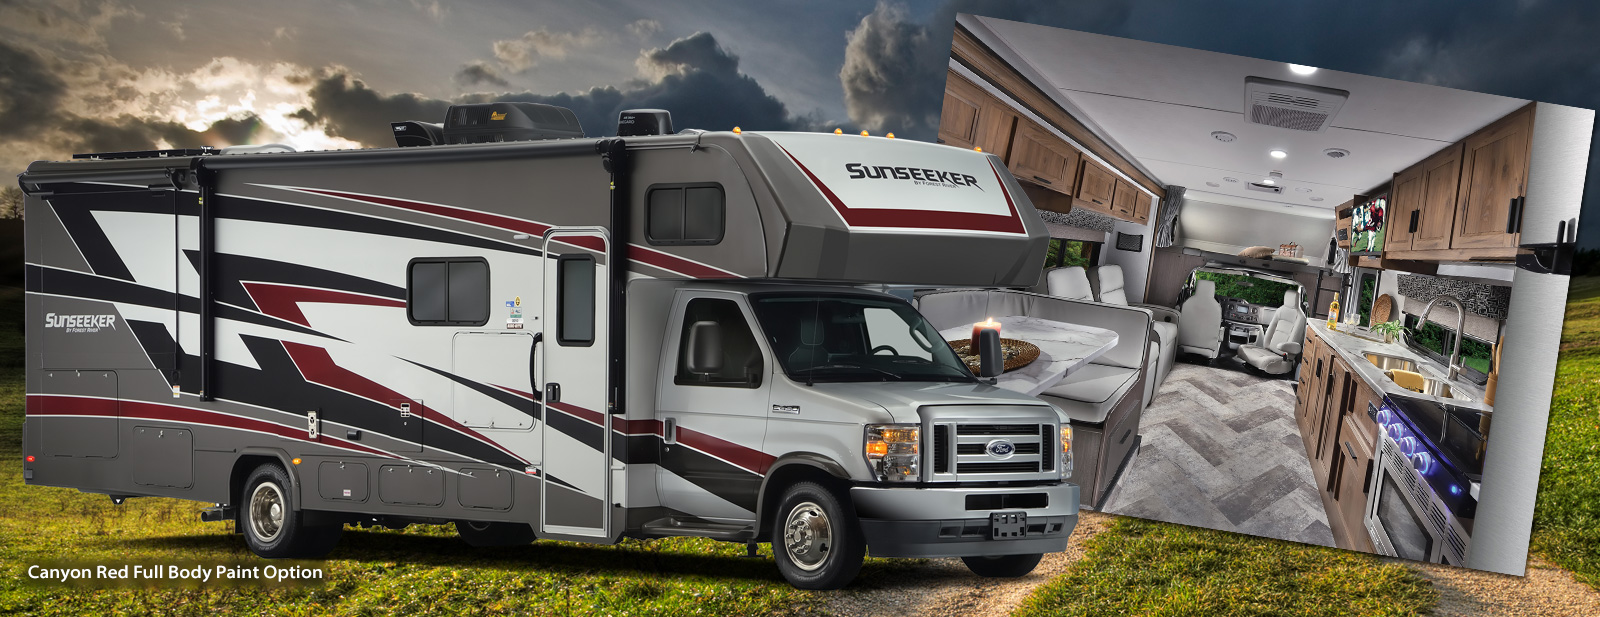 Sunseeker | Forest River RV - Manufacturer of Travel Trailers